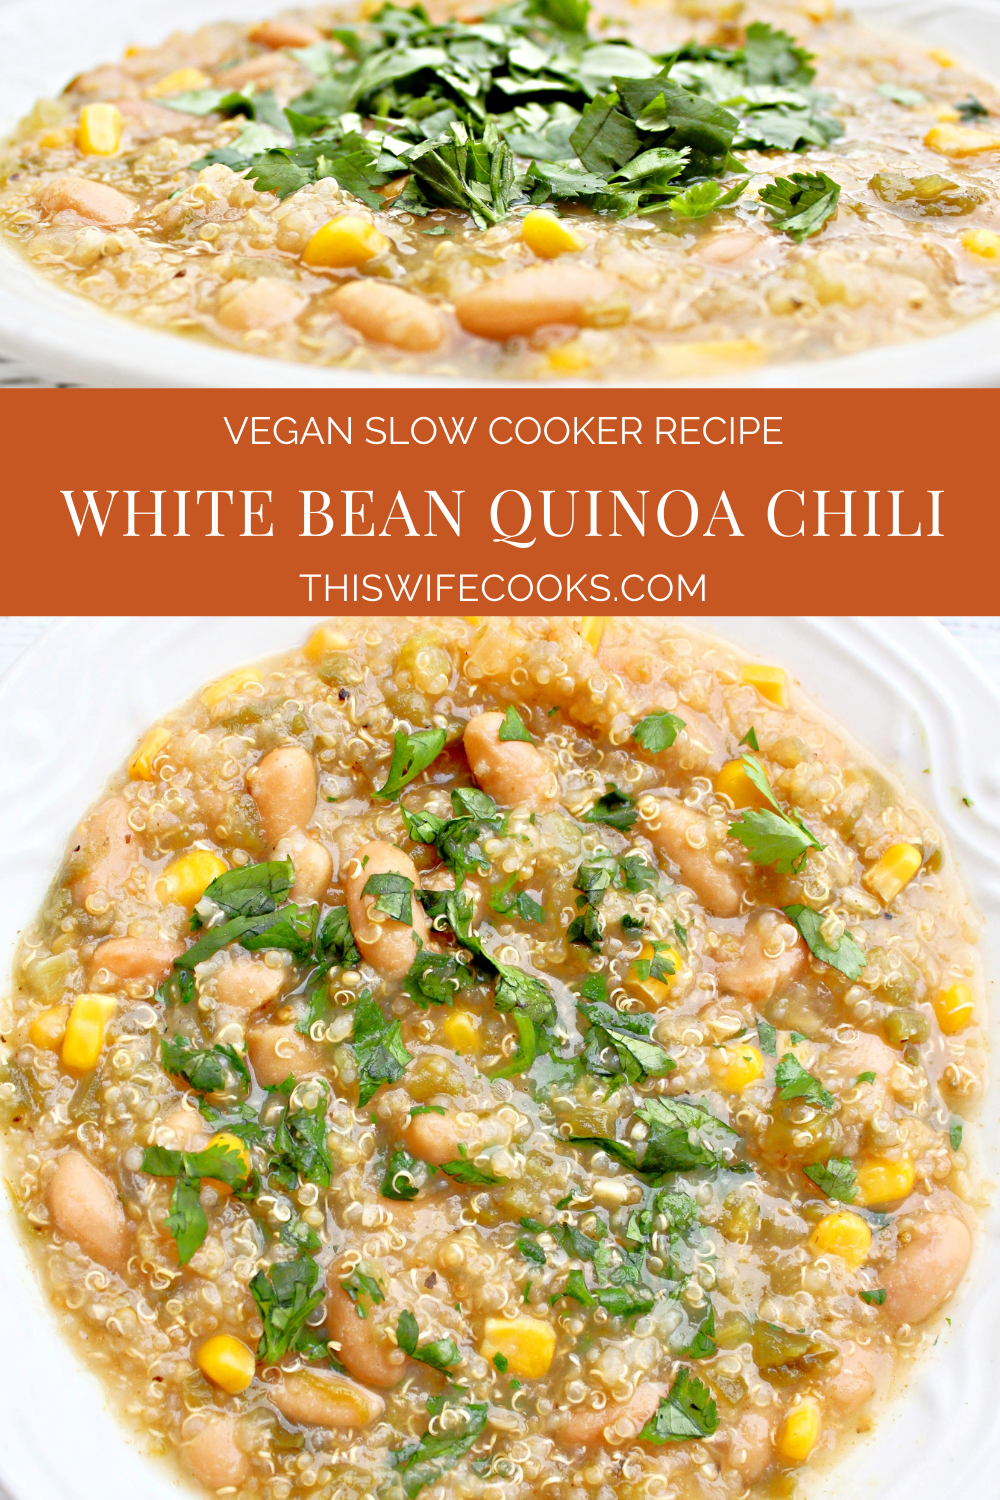 White Bean Quinoa Chili ~ This hearty and healthy crockpot chili is simple to make and loaded with good-for-you, budget-friendly ingredients! via @thiswifecooks